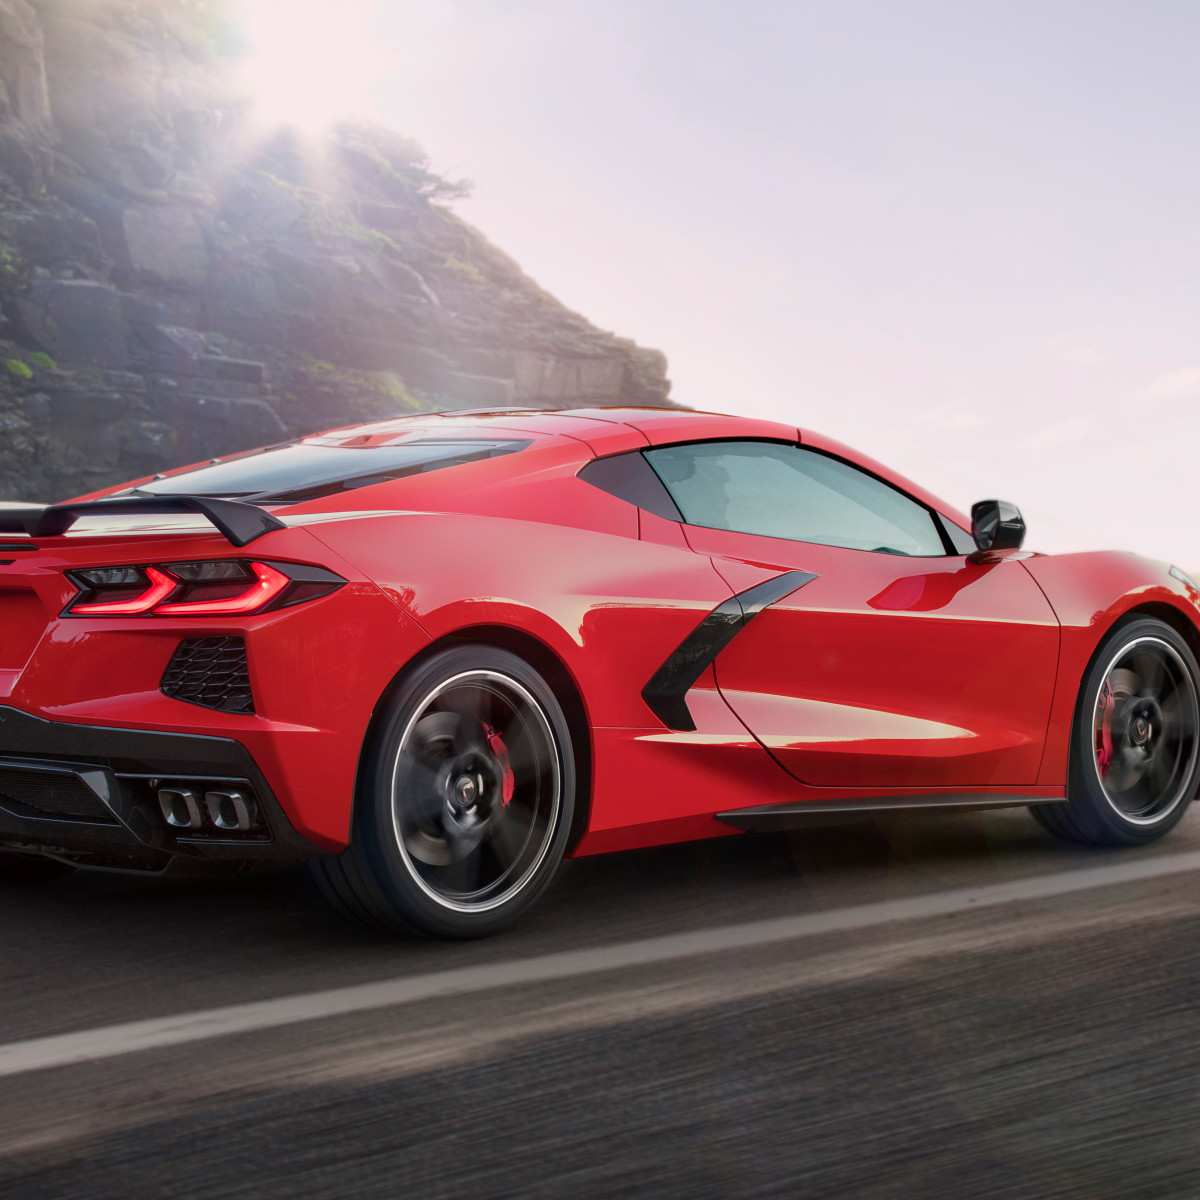 91 All New 2020 Chevrolet Corvette Mid Engine C8 Pictures by 2020 Chevrolet Corvette Mid Engine C8